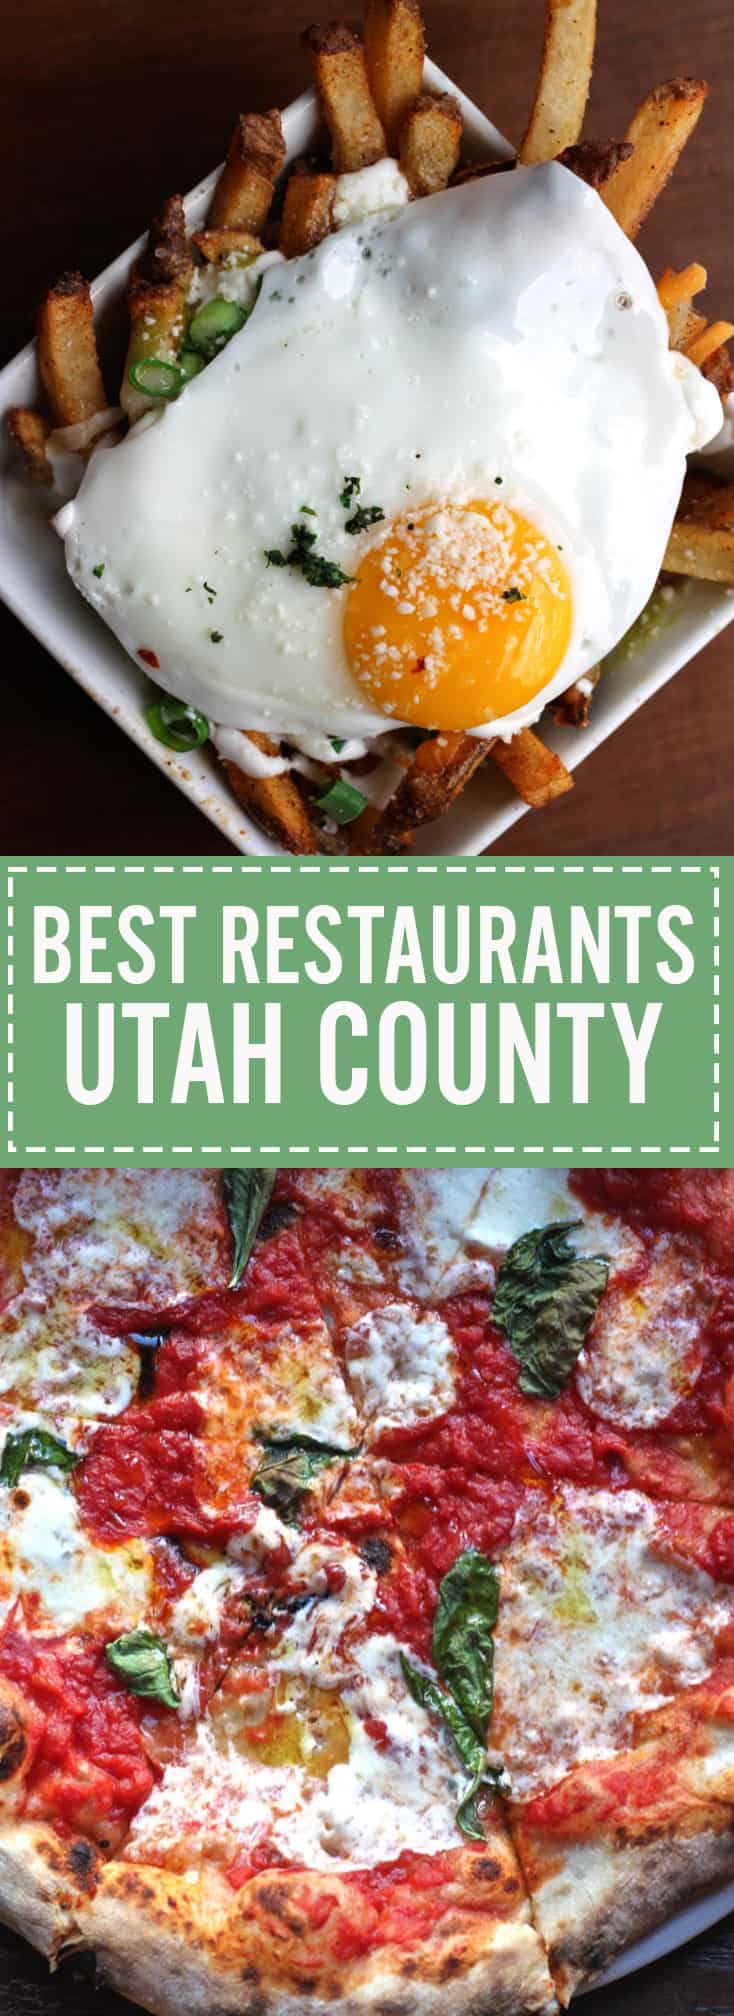 A list of the best restaurants in Utah County including a bonus list of best dessert spots. See if your favorites are on the list!